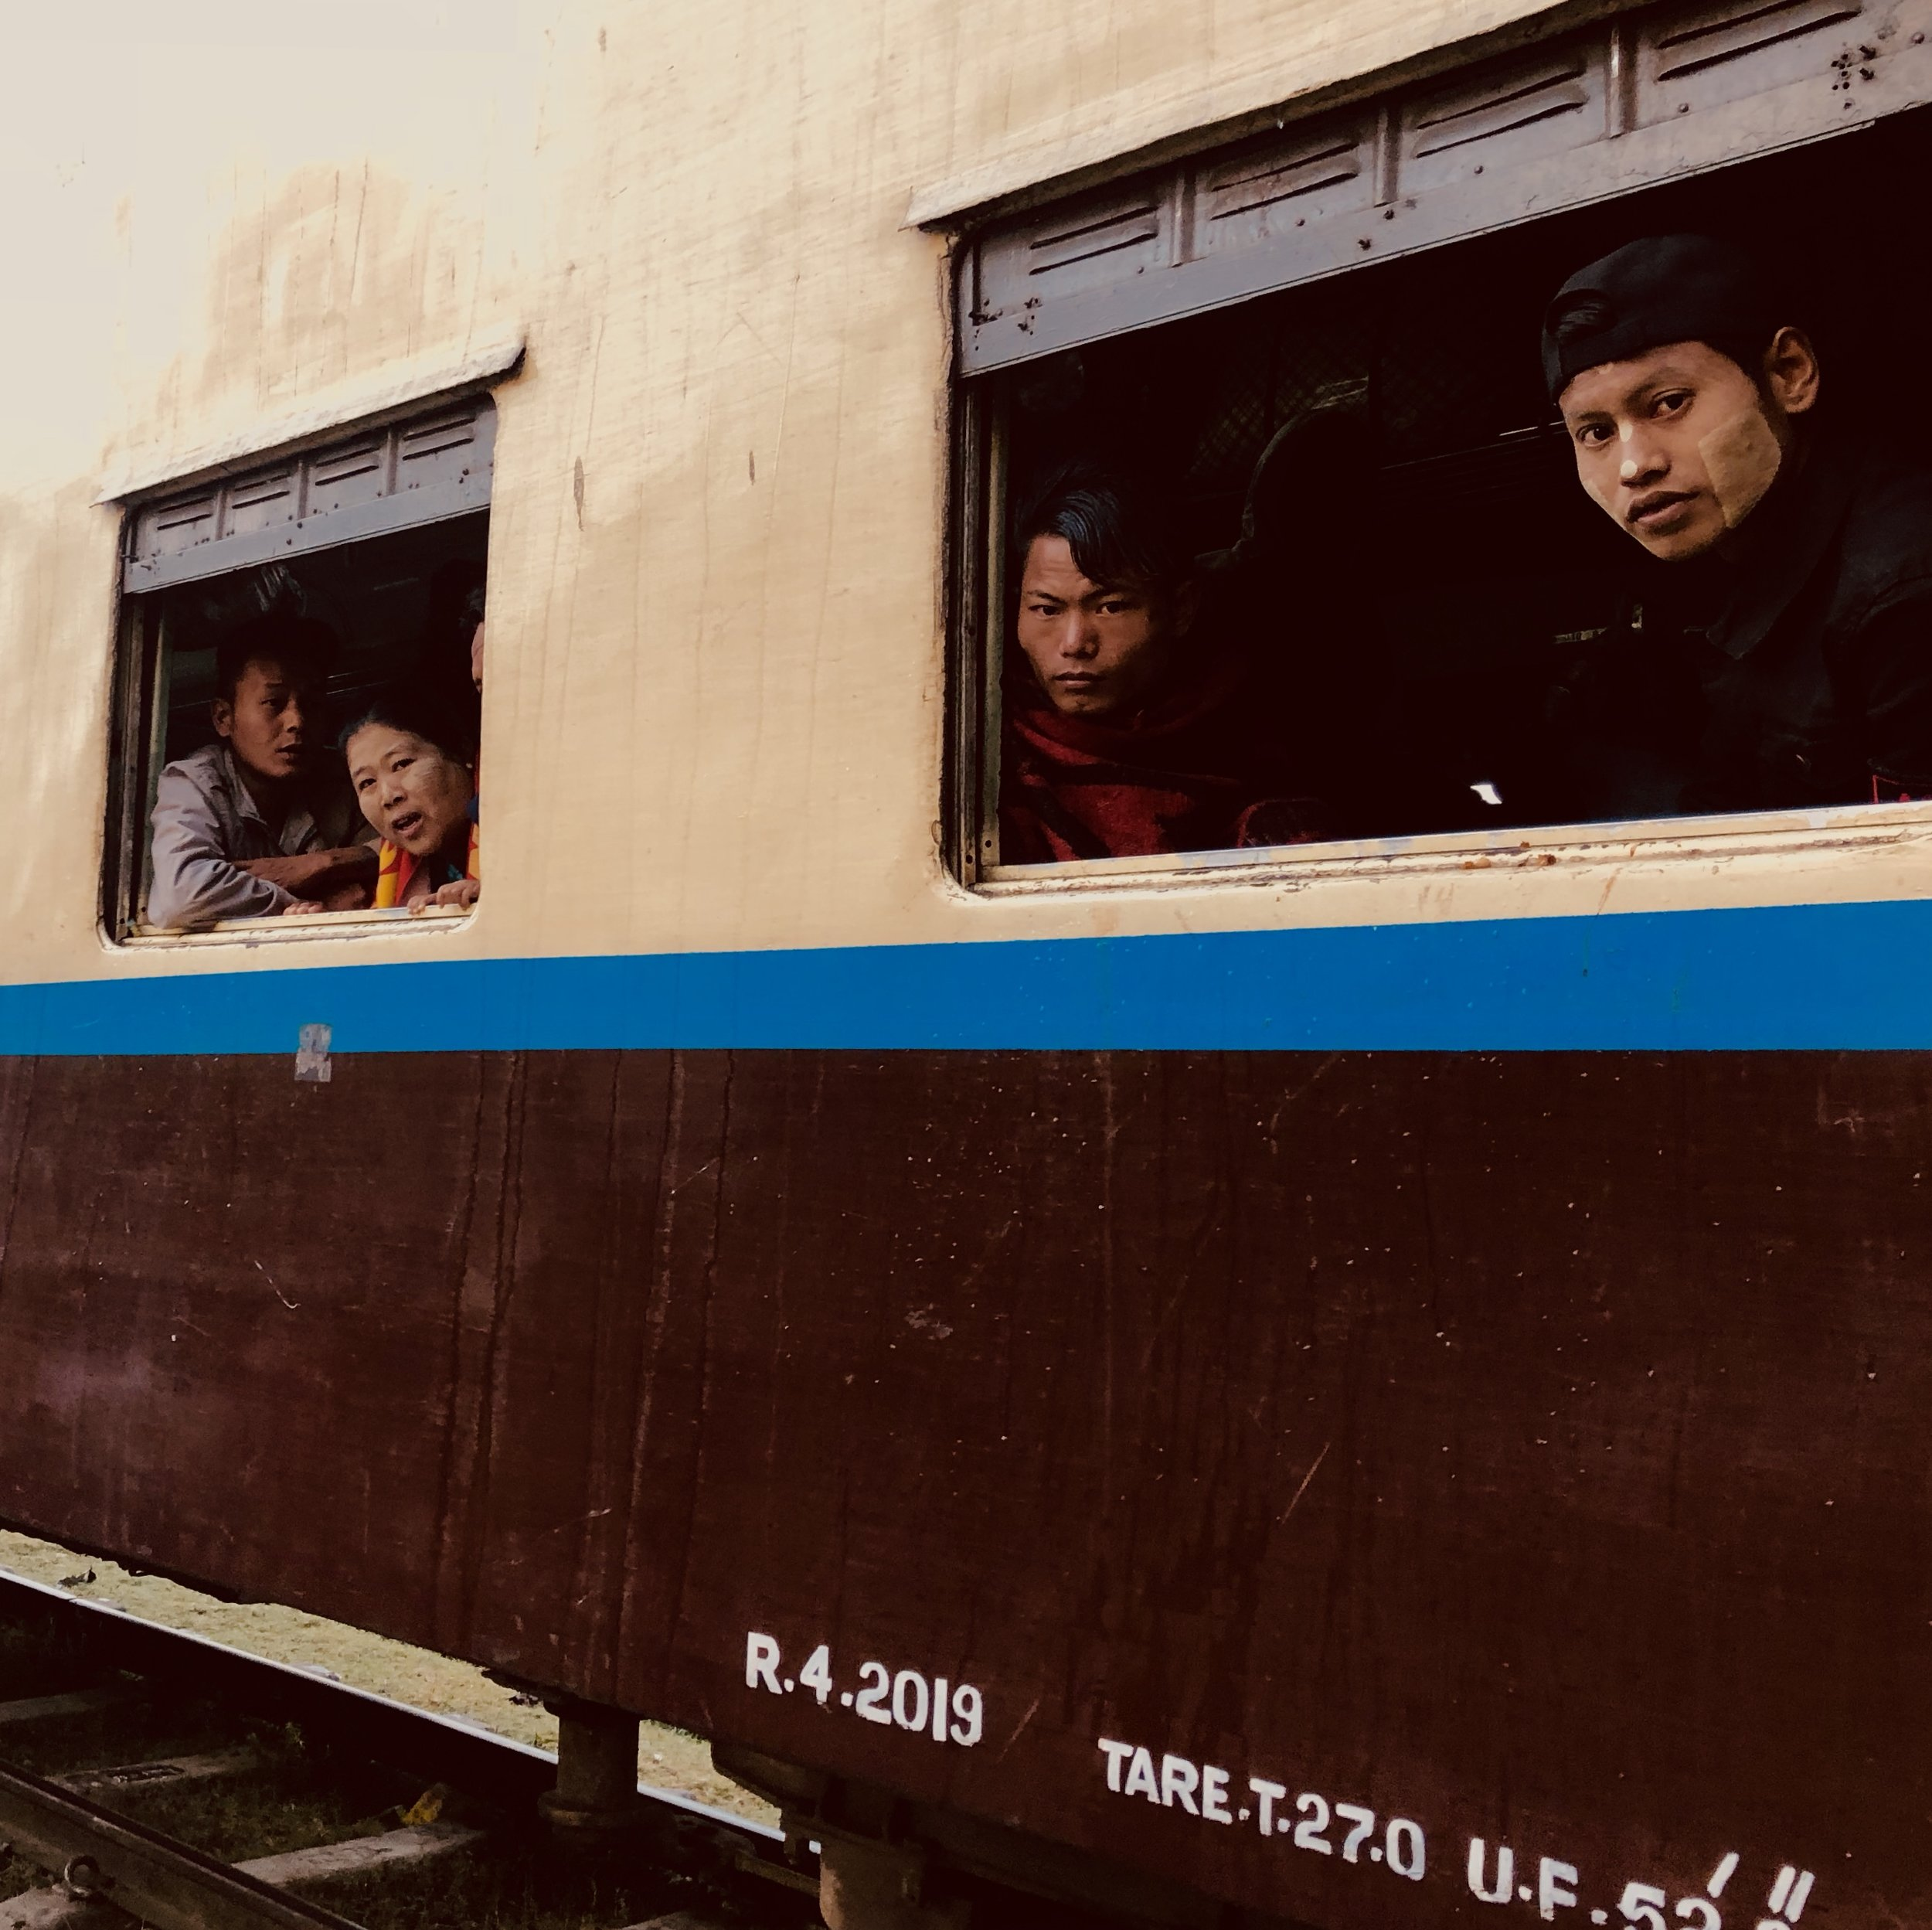 Passengers wait for the train to depart